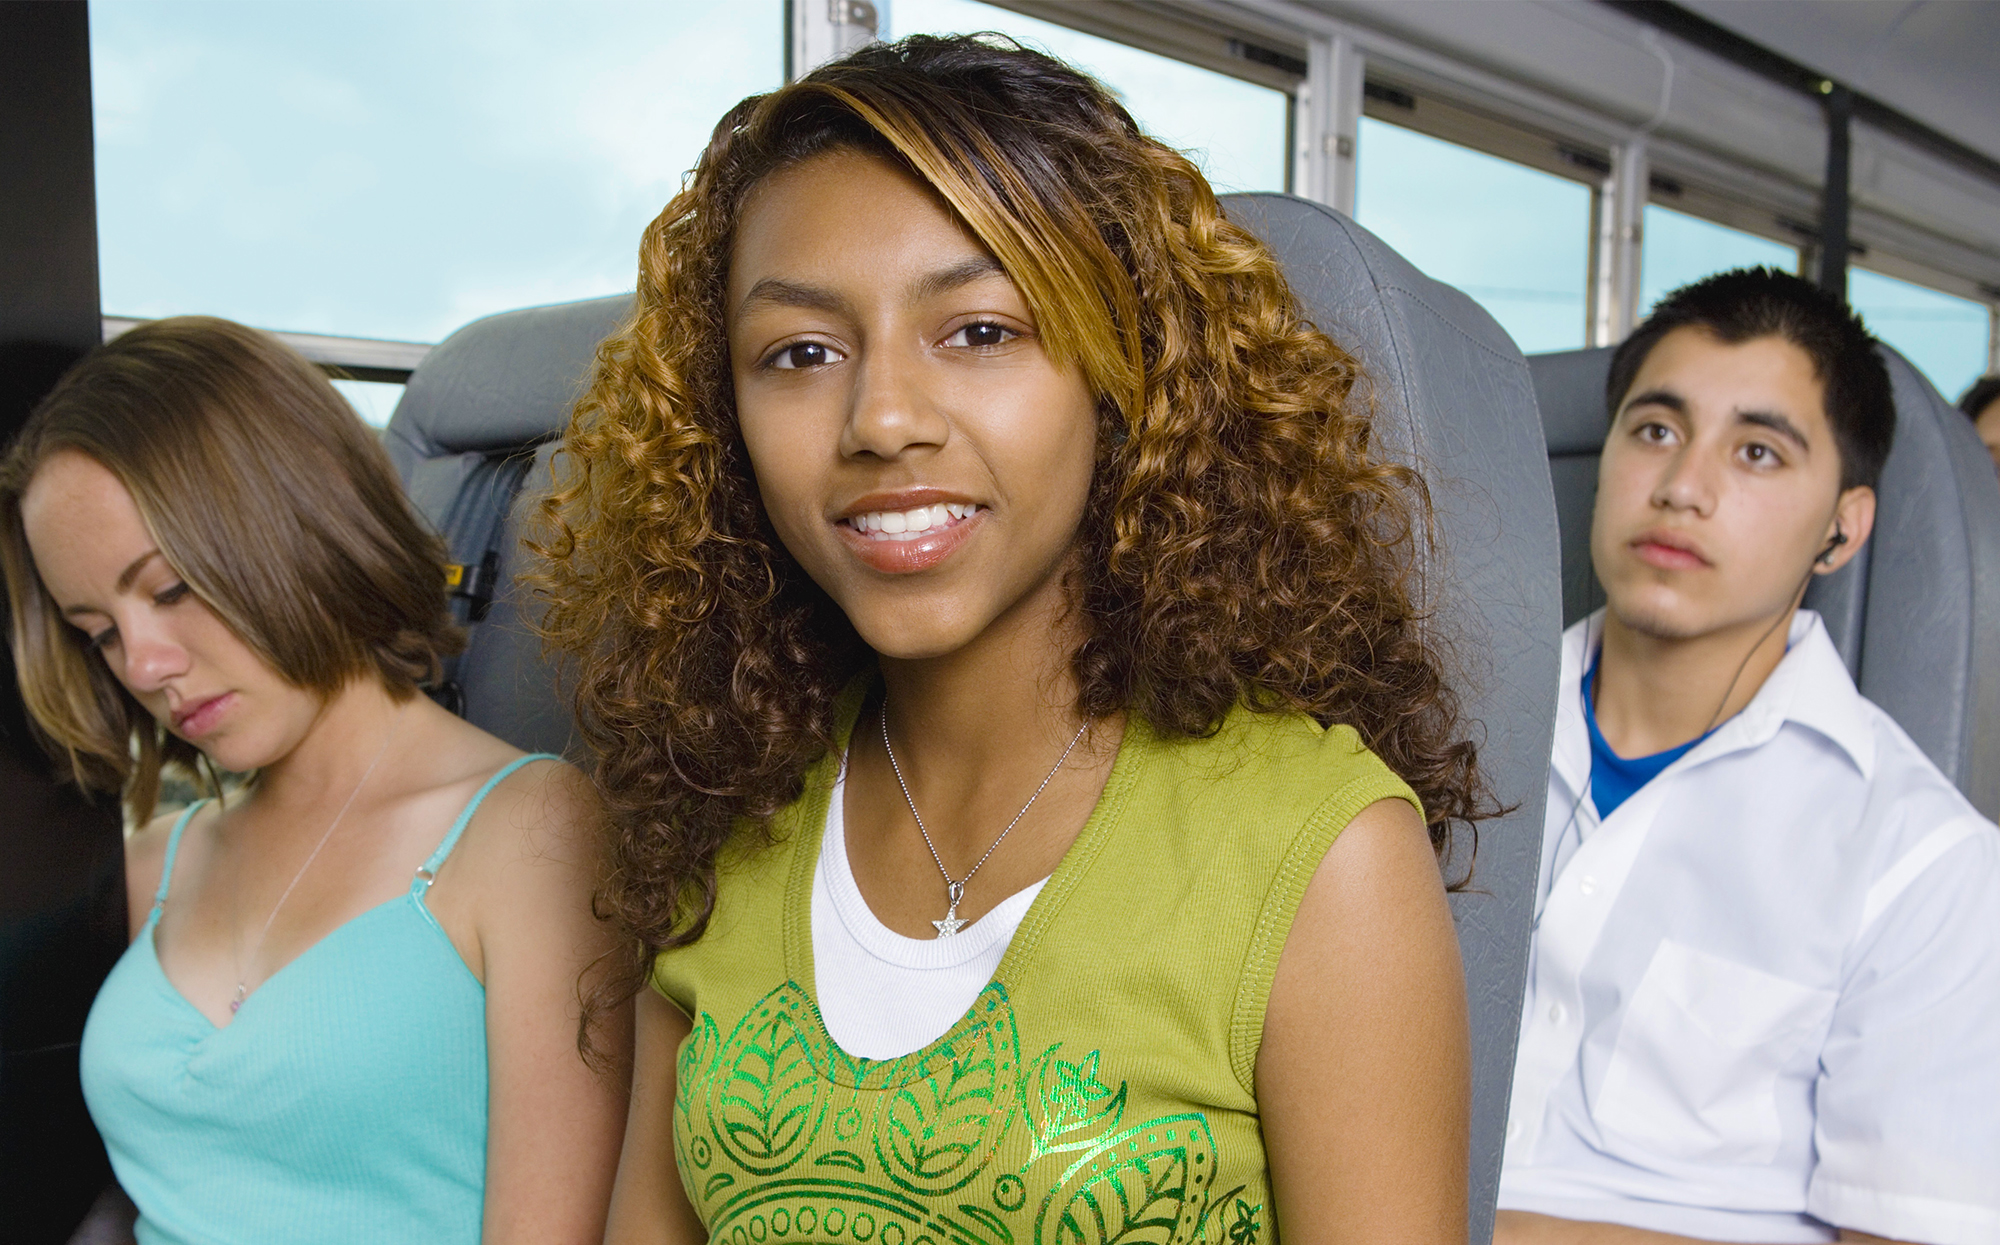 SAFE &#038; AFFORDABLE<br/> STUDENT BUSING